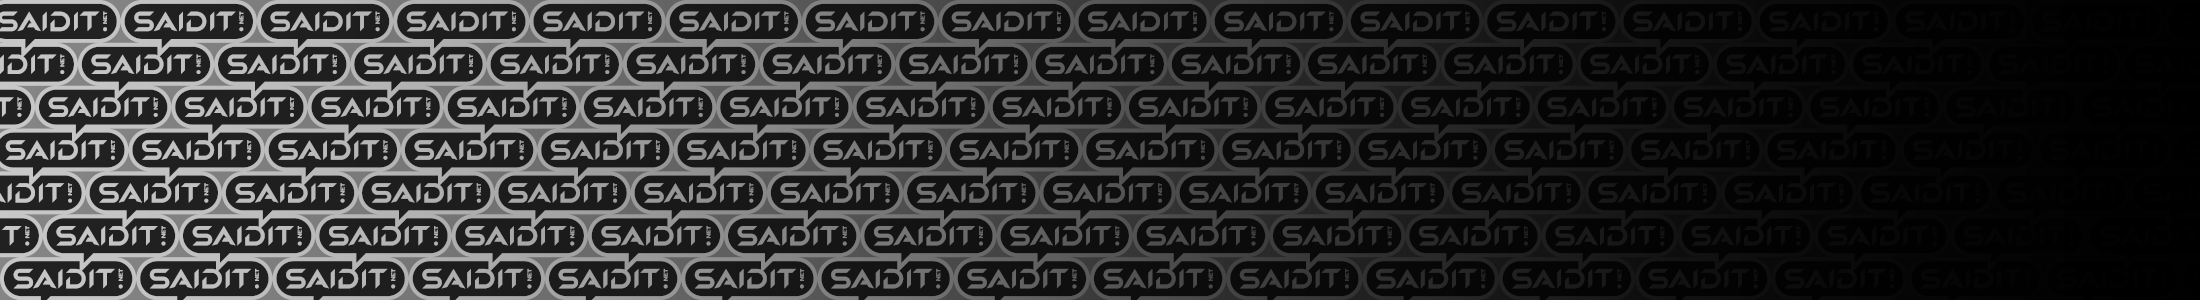 Image Saidit-2019-Banner-Tiled-Logo-Night-FadeToBlack-2200x300